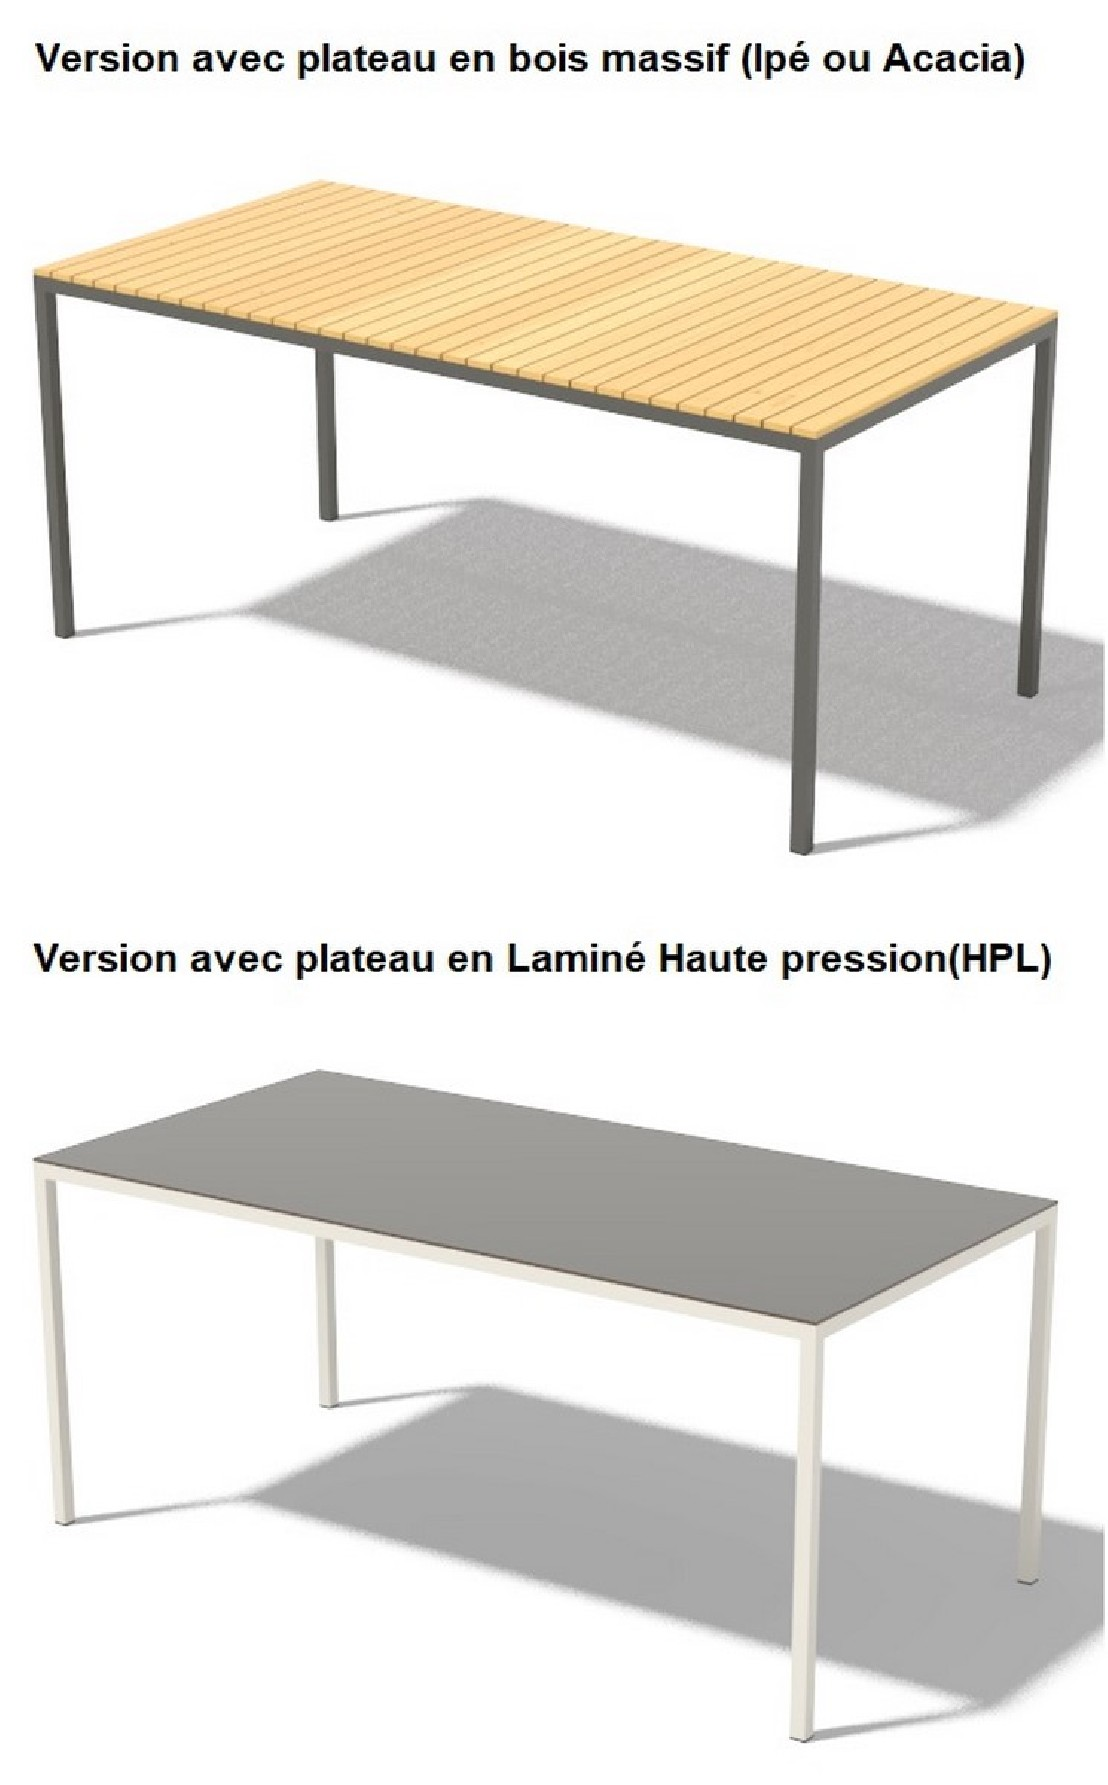 table table de jardin plateau hpl meilleures id es pour la conception et l 39 ameublement du jardin. Black Bedroom Furniture Sets. Home Design Ideas